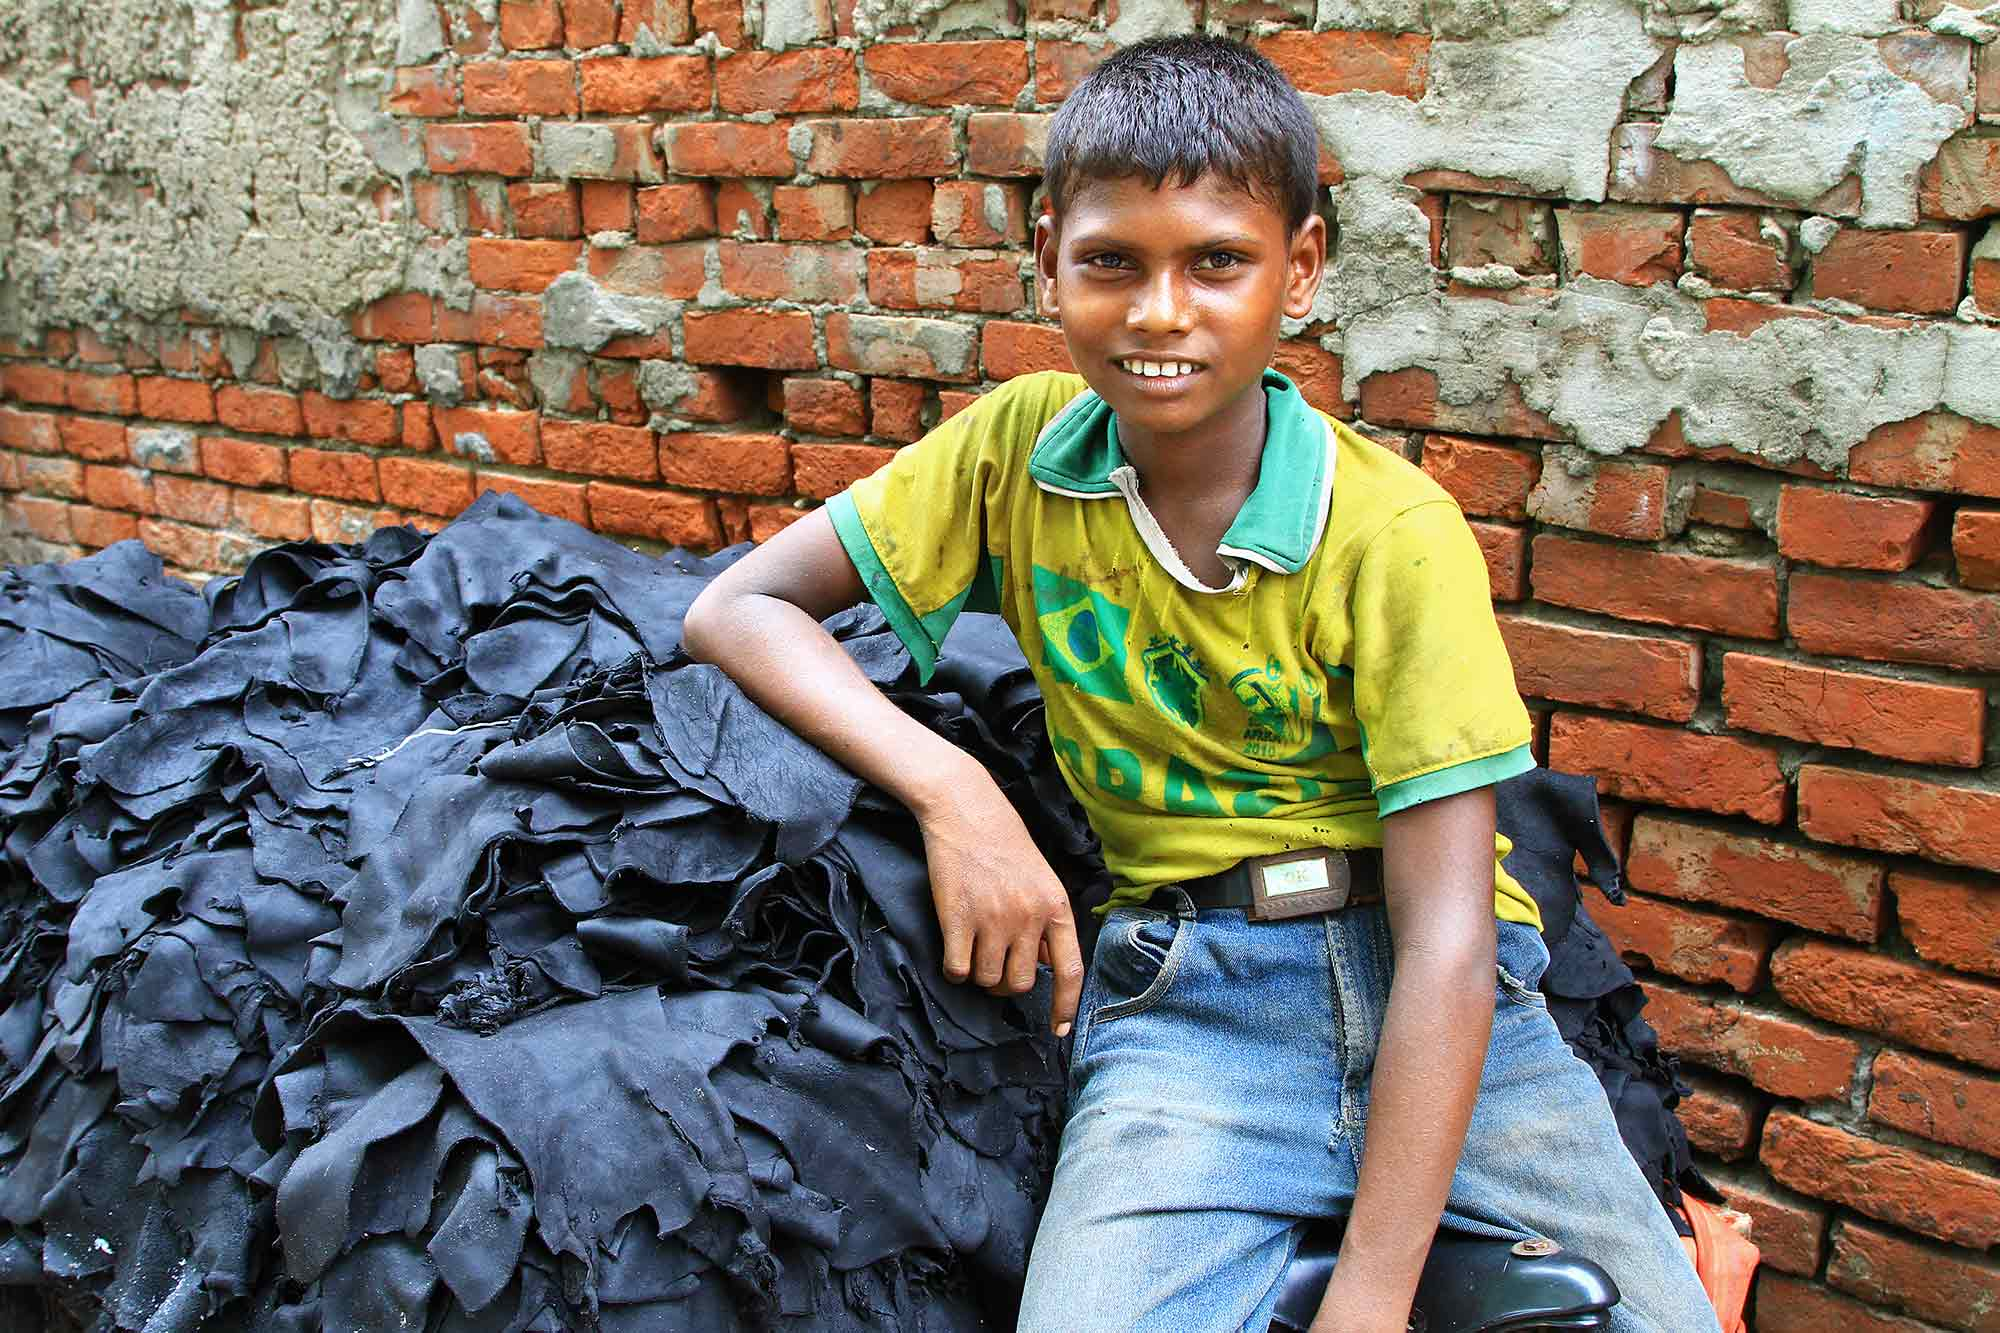 A boy working at the leather tanneries in Dhaka. © Ulli Maier & Nisa Maier